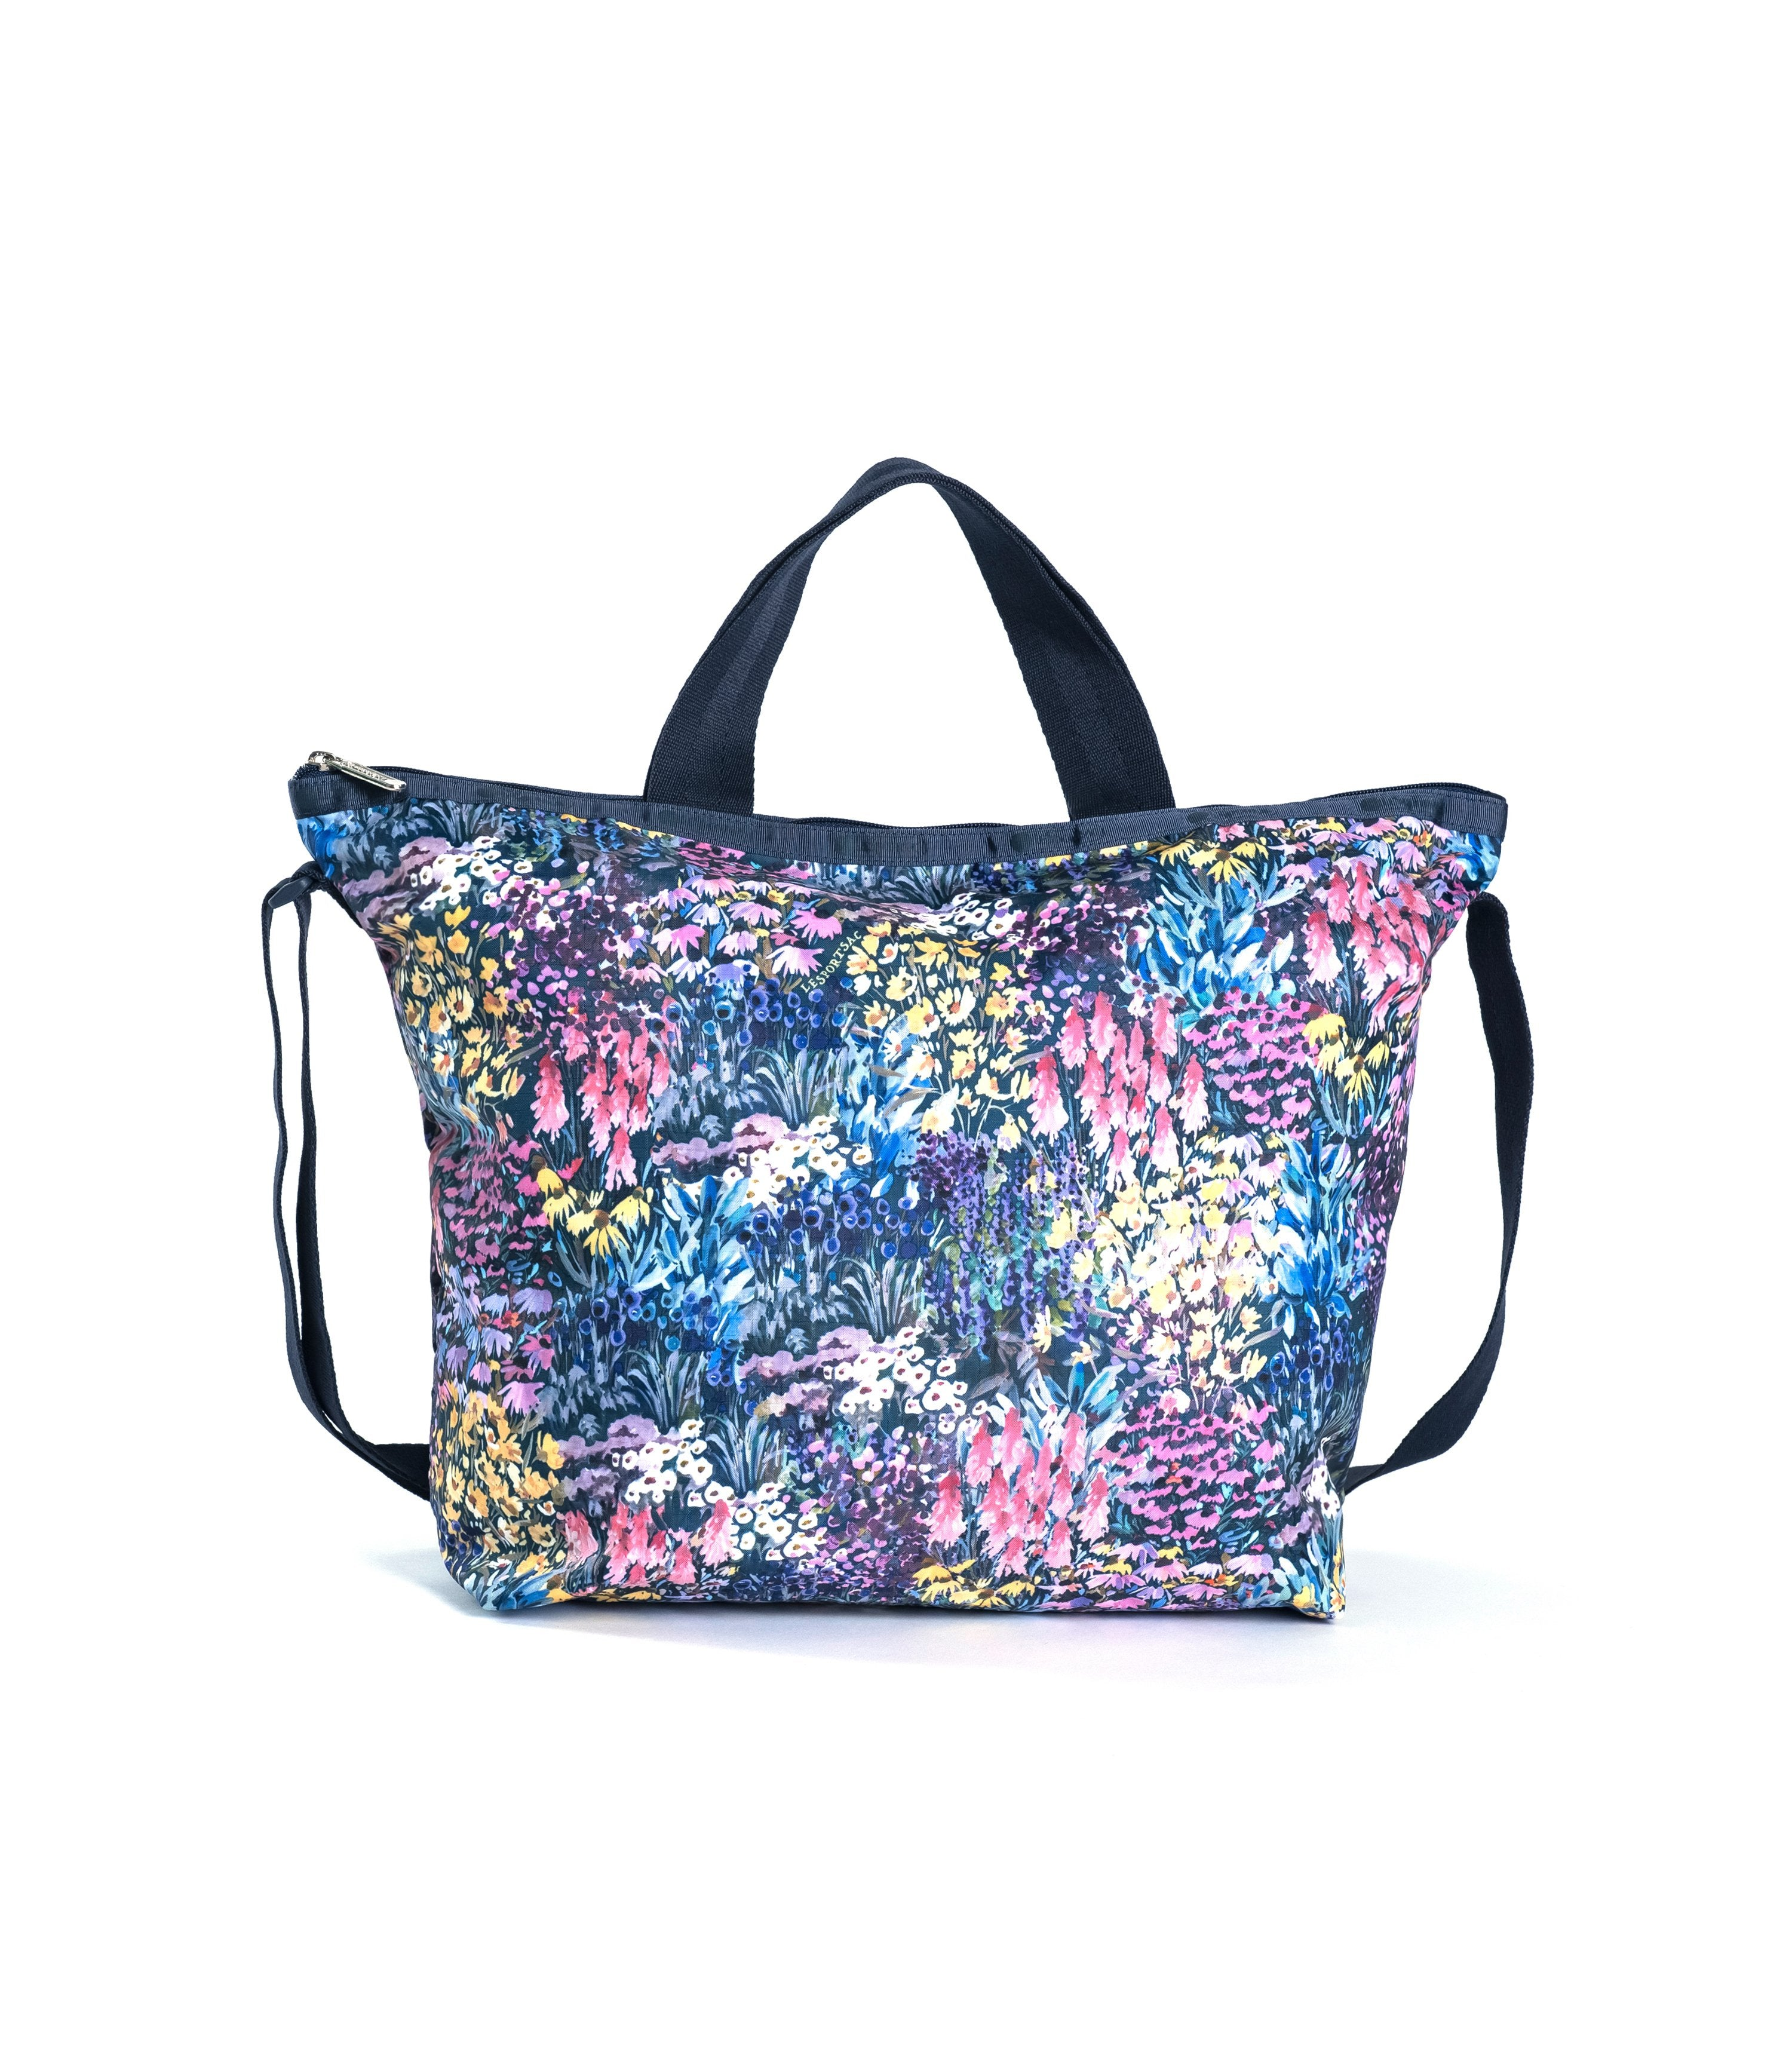 LeSportsac - Deluxe Easy Carry Tote - Totes - Soho Garden print